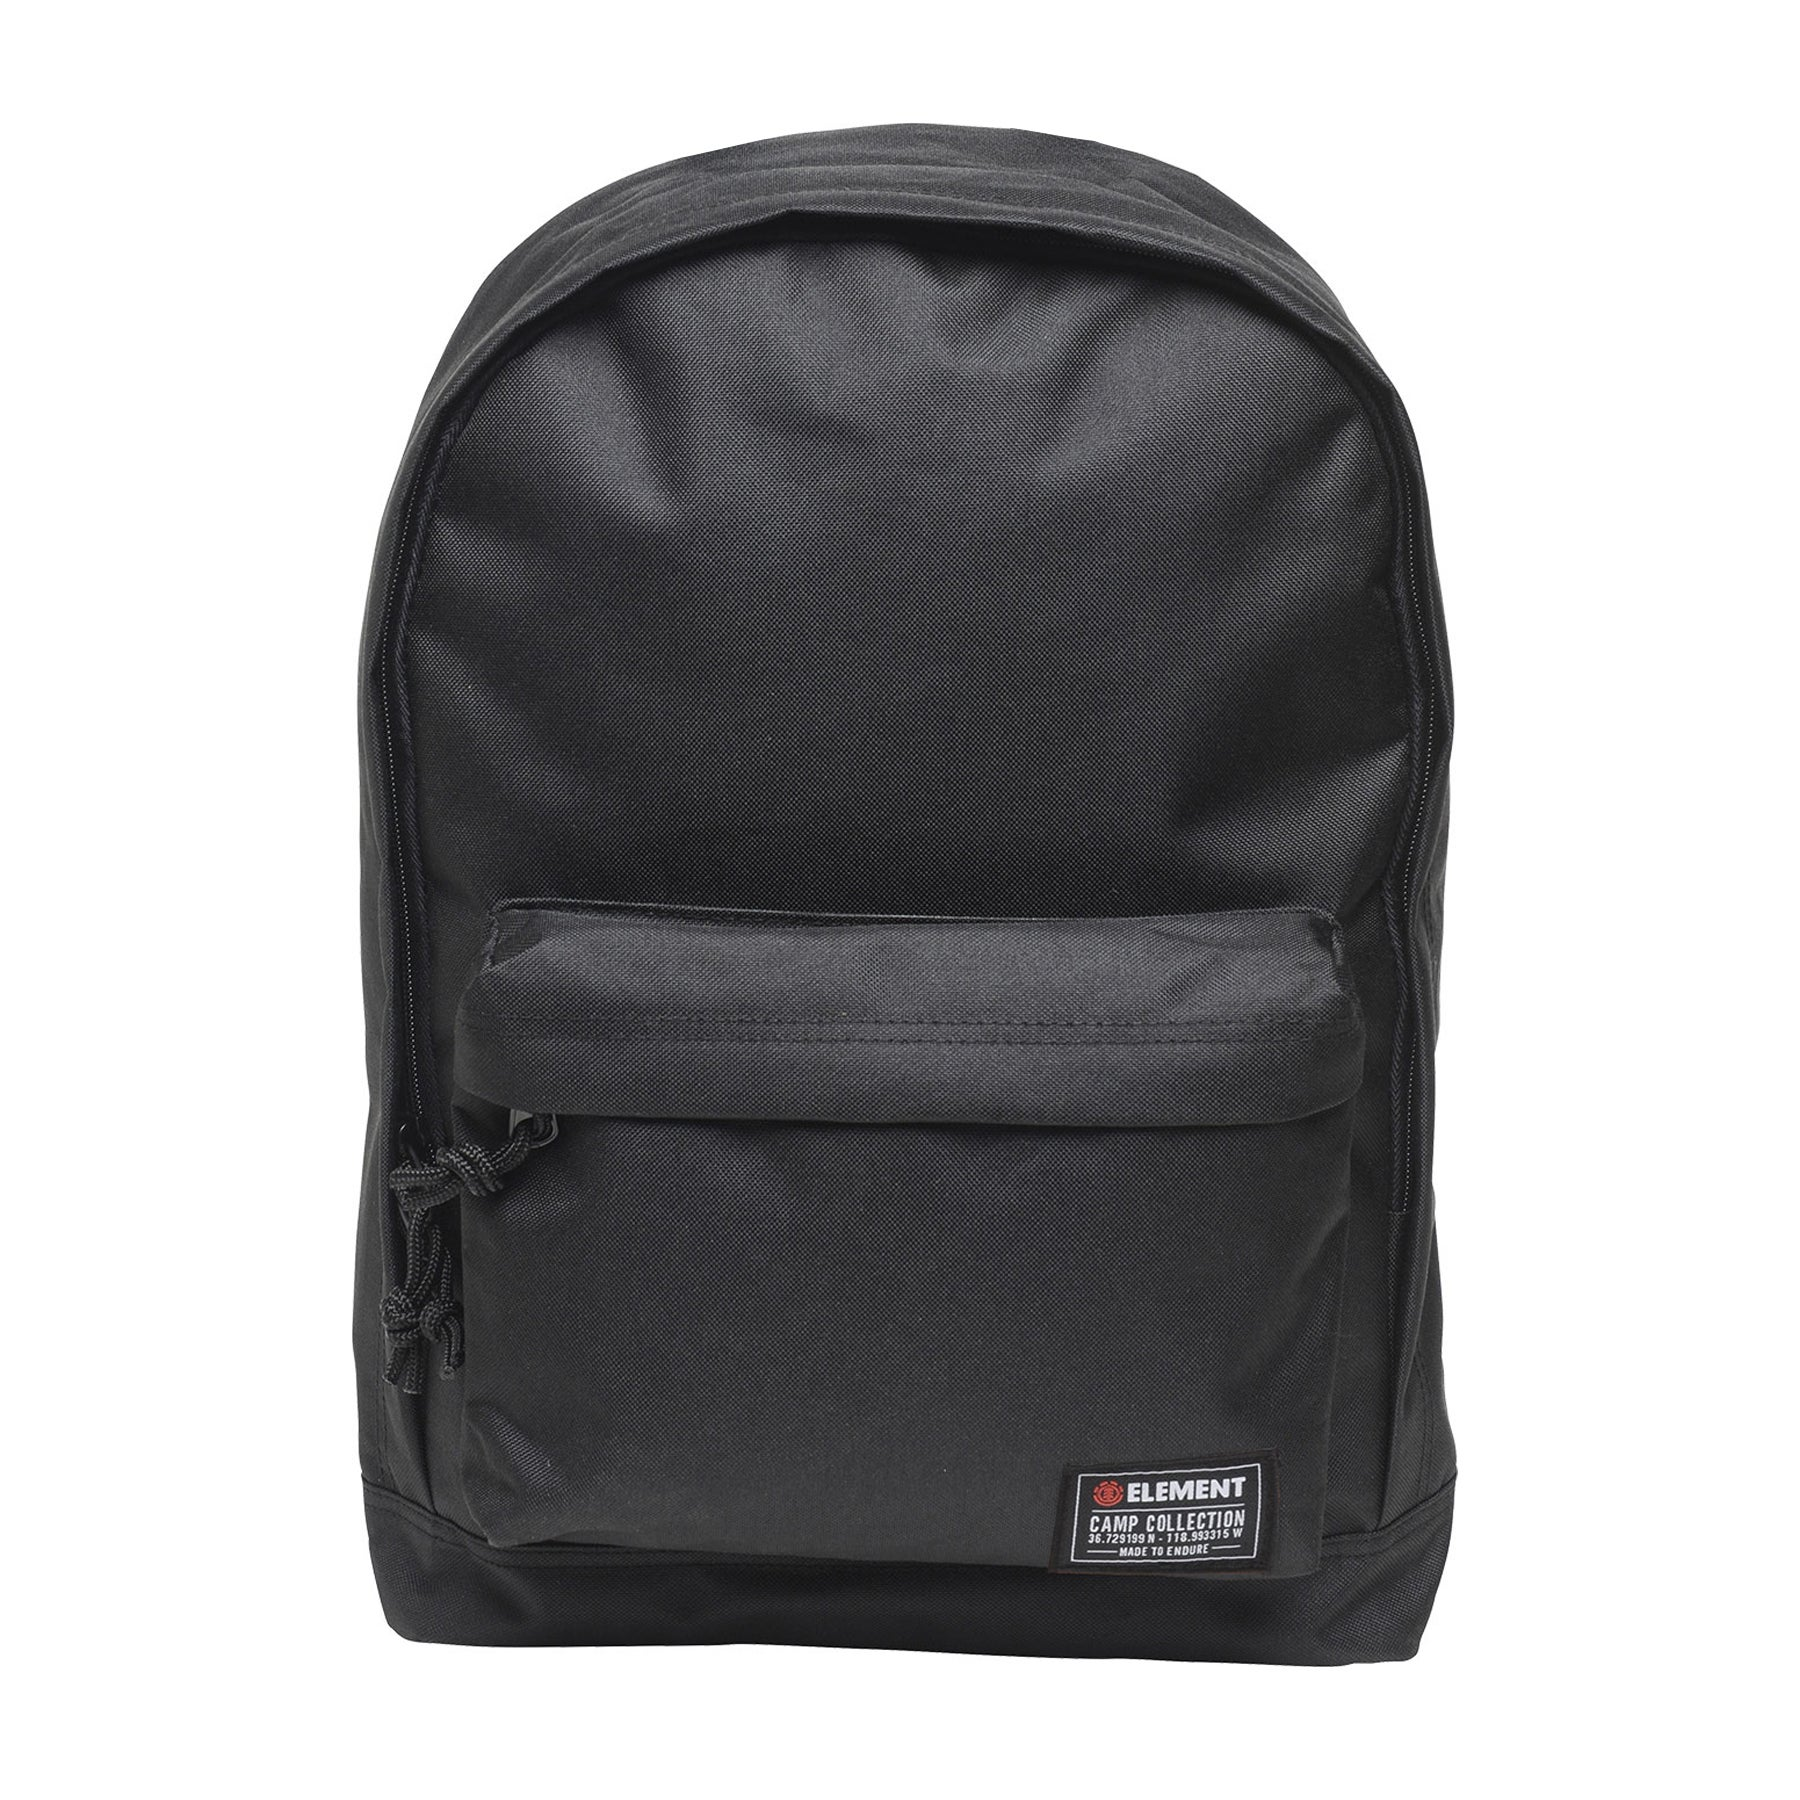 Element Beyond Backpack - Flint Black